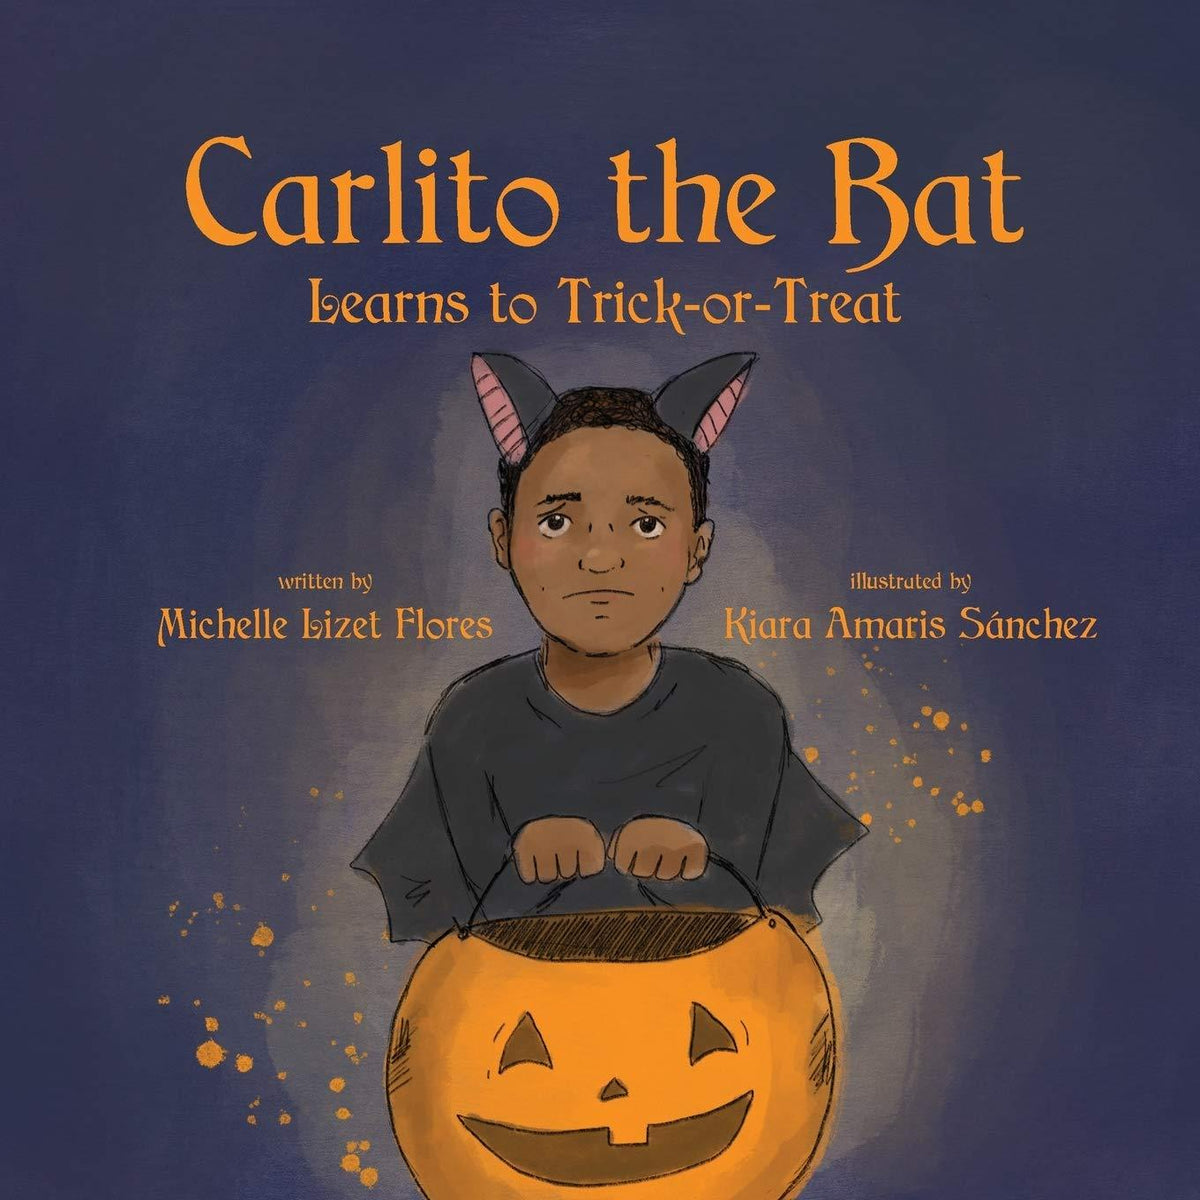 Carlito the Bat Learns to Trick-or-Treat